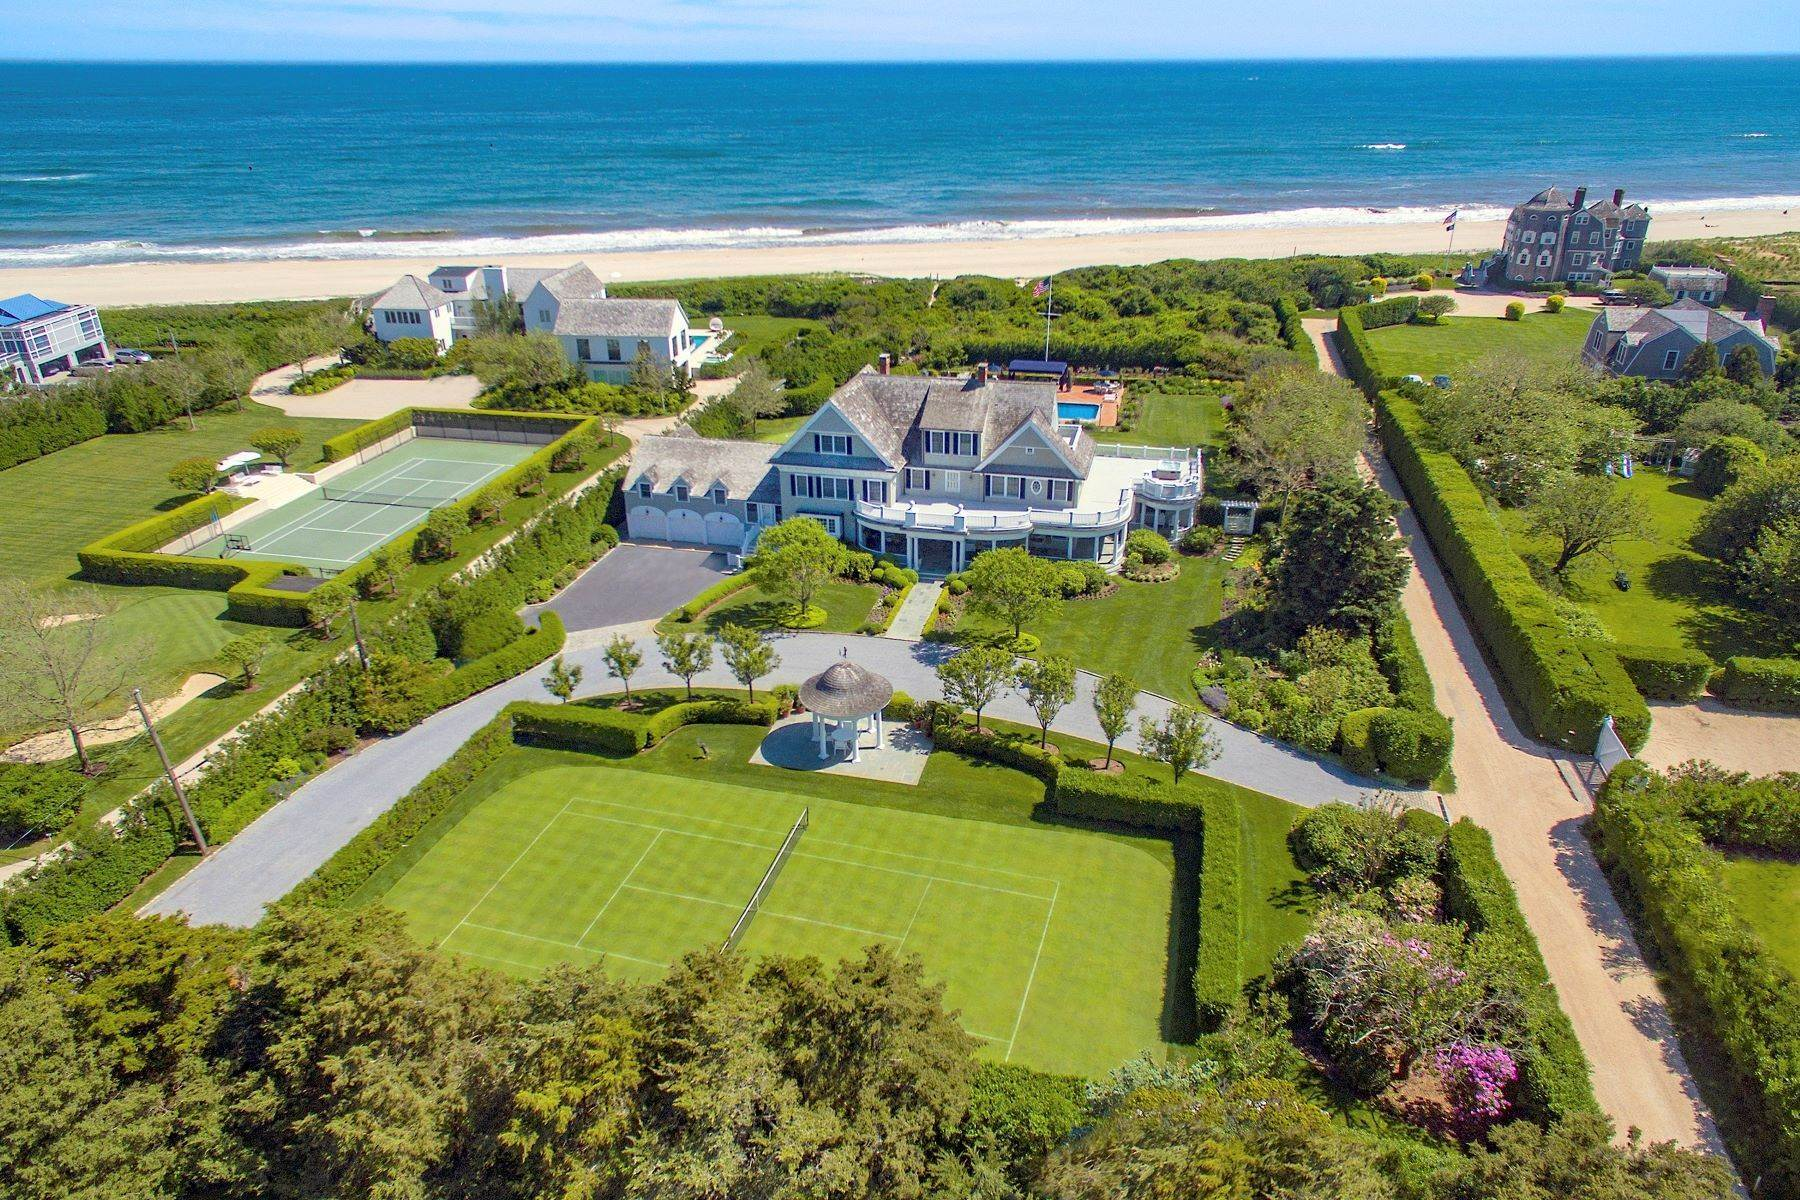 Single Family Homes for Sale at 'Ocean Dream' Estate With Pool & Tennis 5 Fair Lea (Aka 36 Gin Lane) Southampton, New York 11968 United States